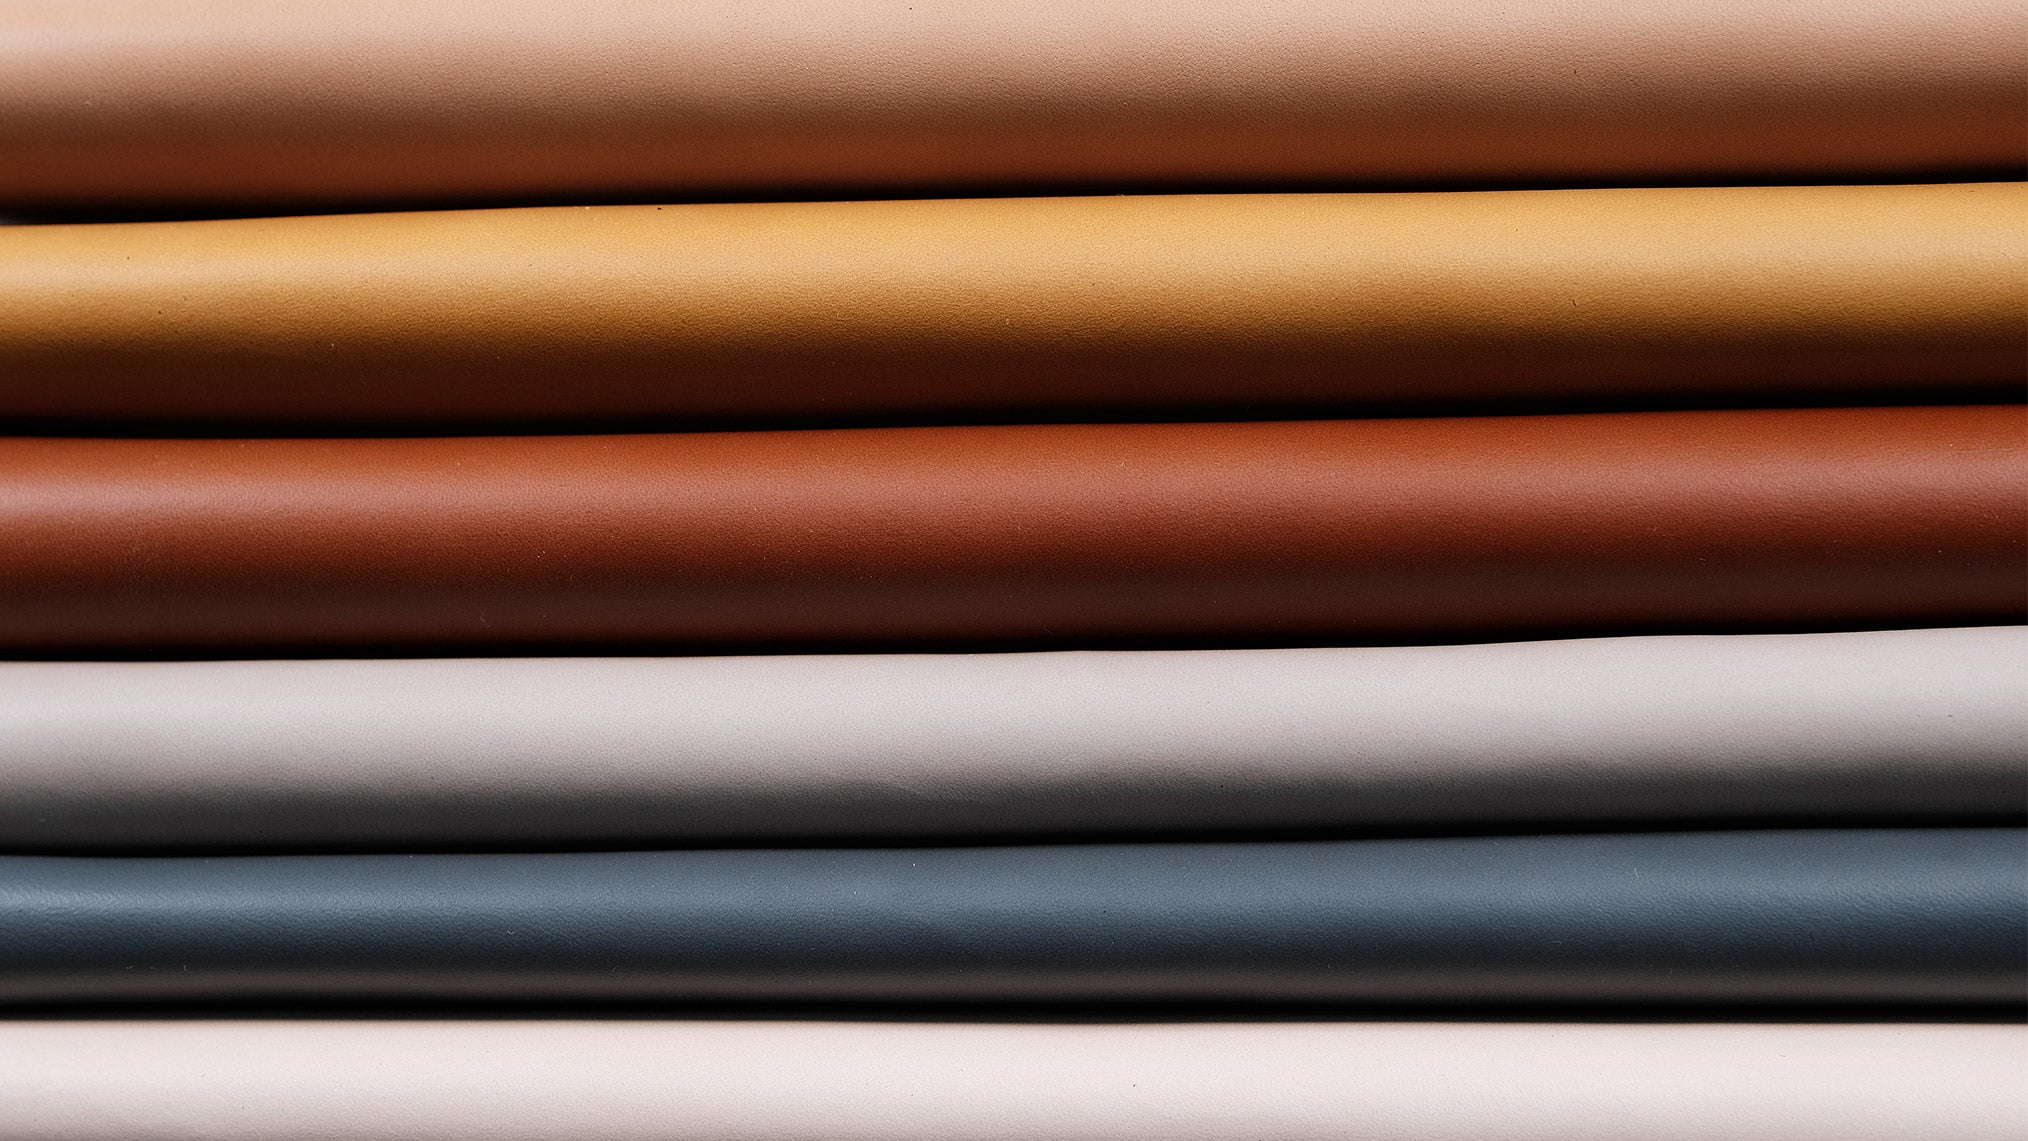 MODHER - Vegetable tanned leather